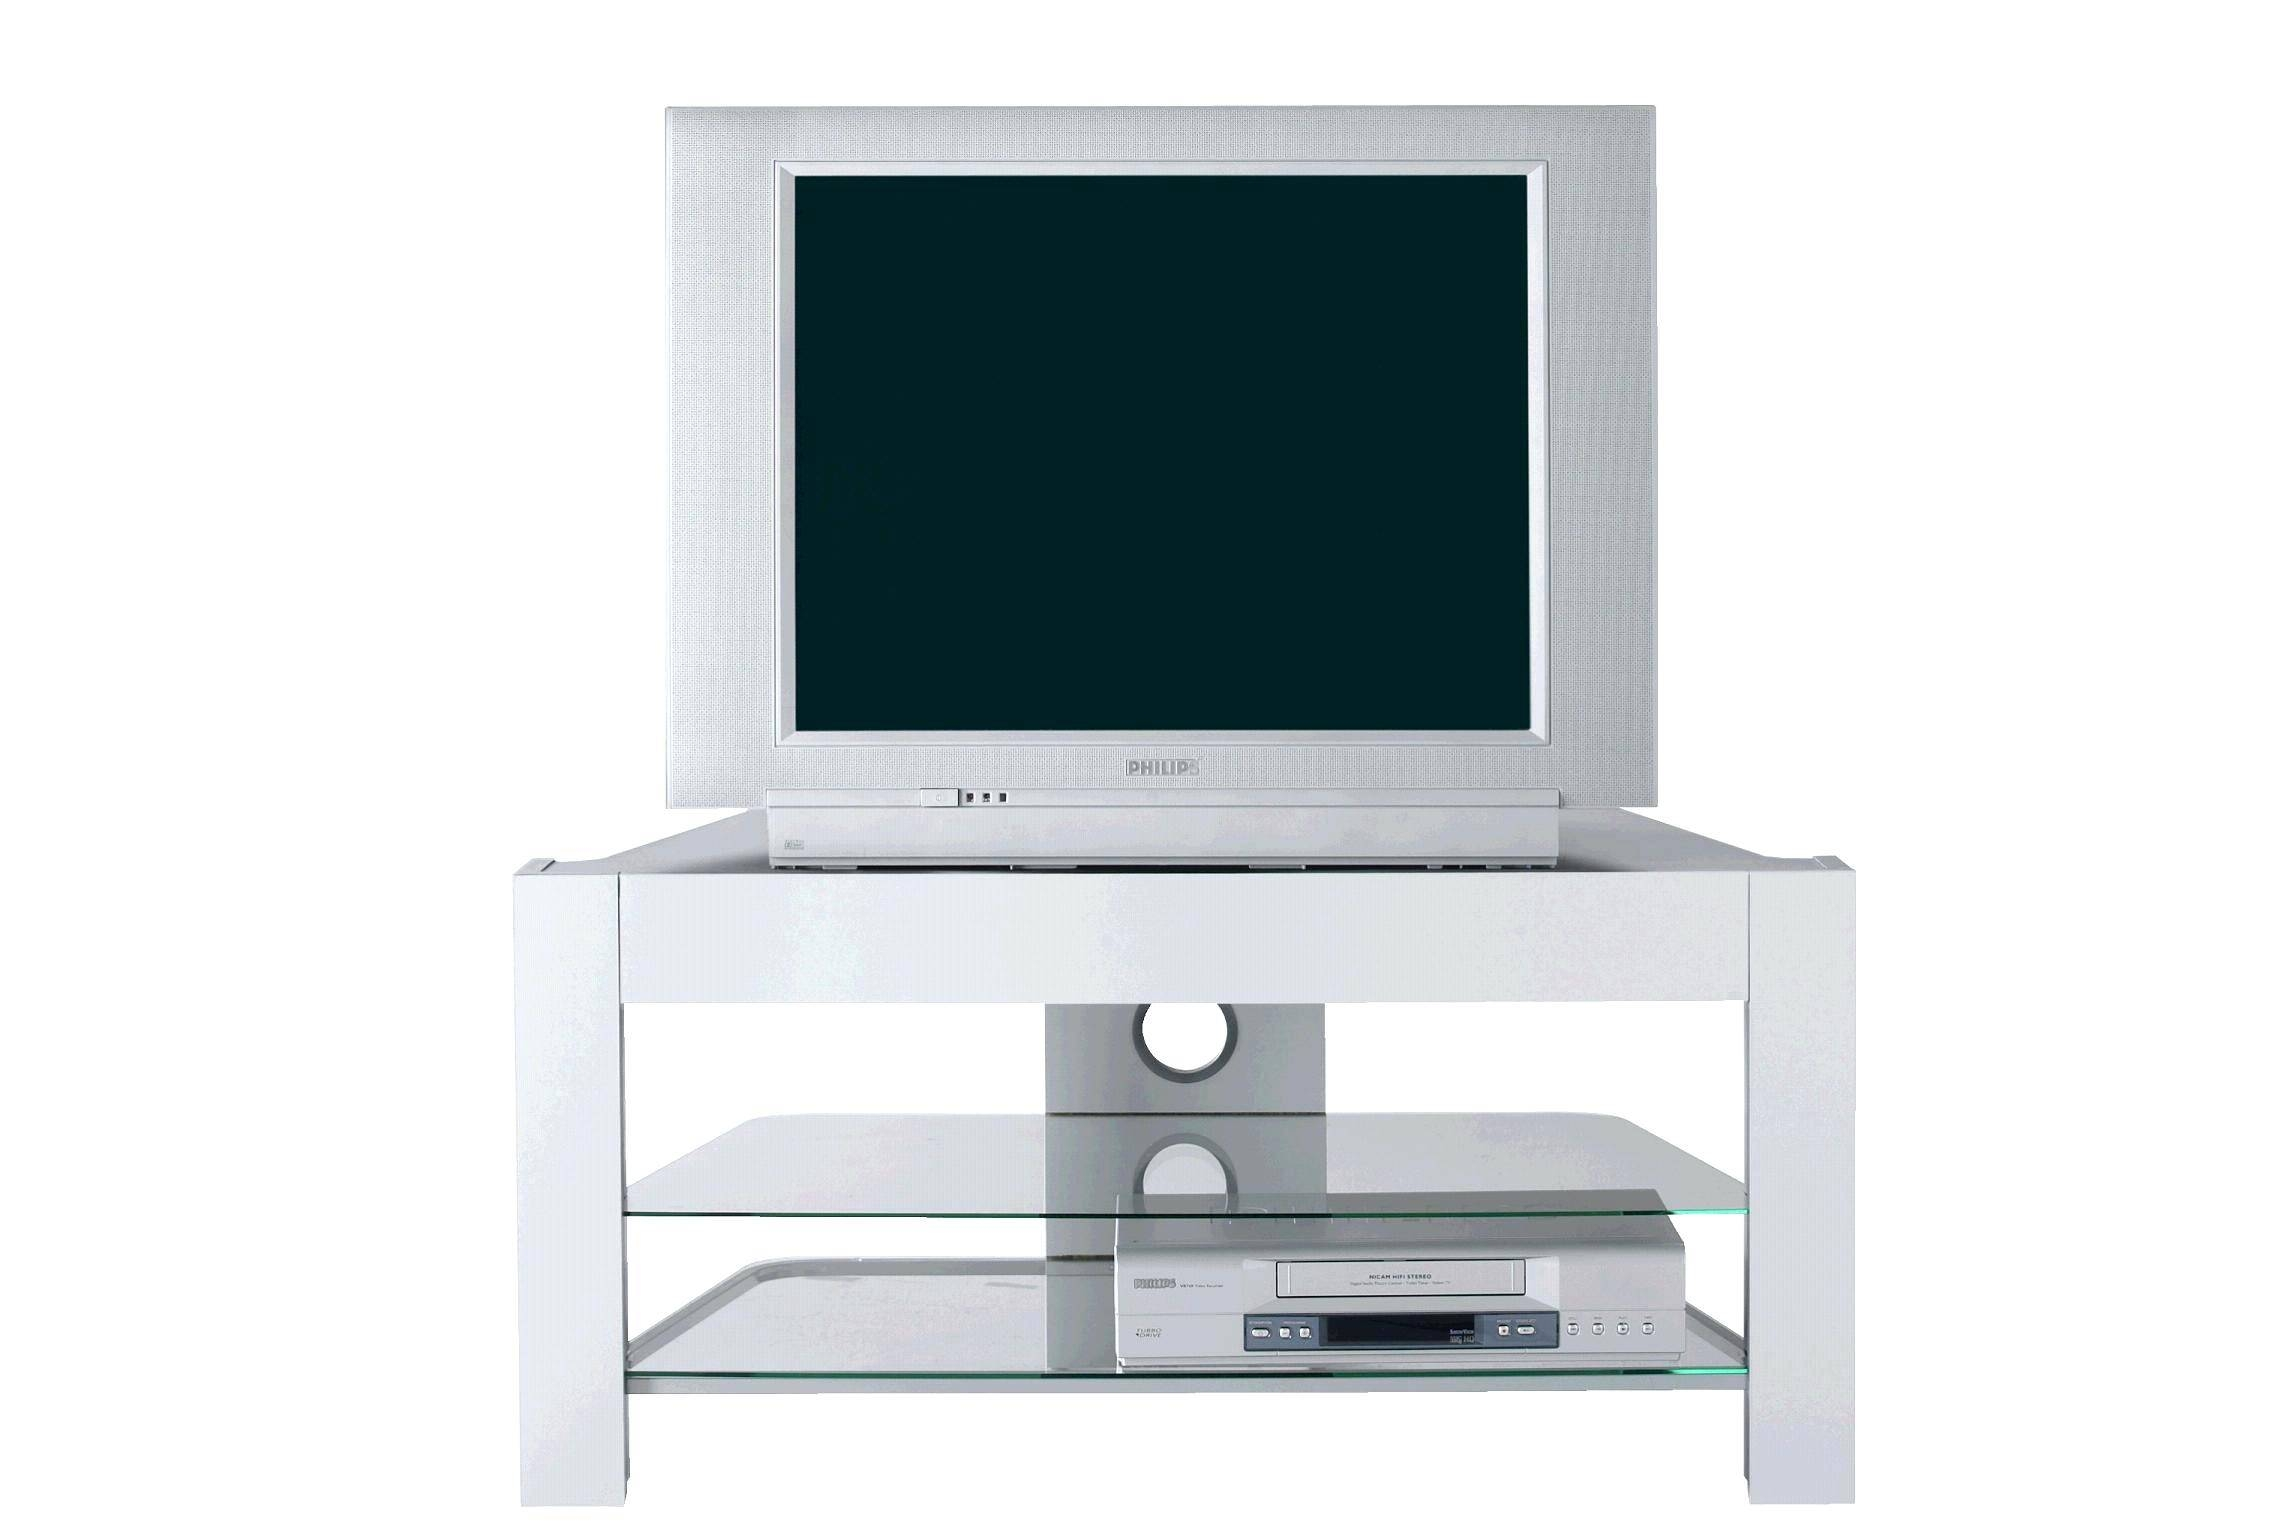 Tv Stand : 46 Panasonic Tv Stand Silver Appealing Fsl800Lus A Tv Regarding Silver Corner Tv Stands (View 9 of 15)